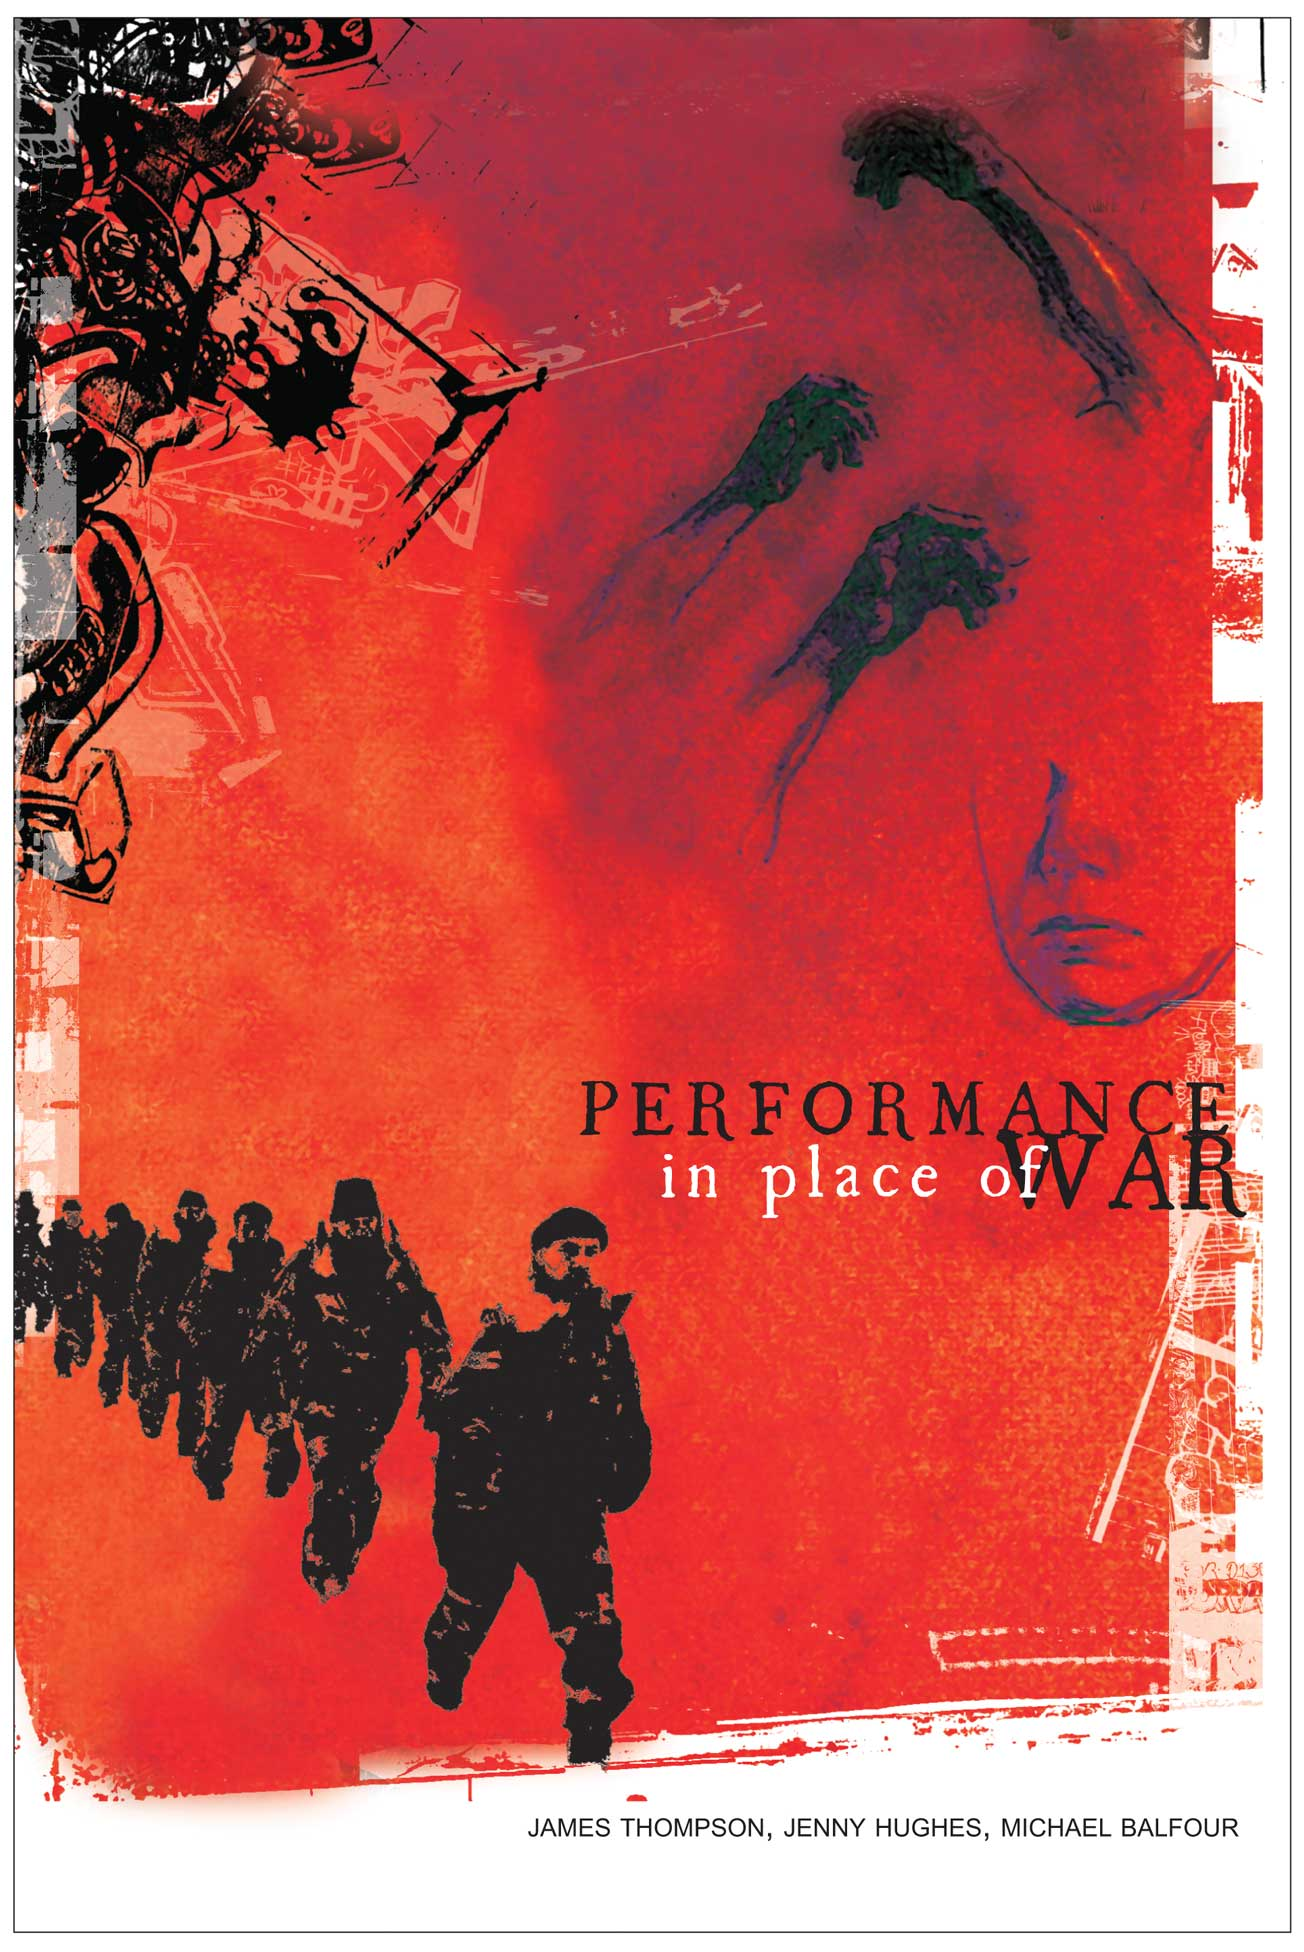 Performance in Place of War by James Thompson, Jenny Hughes and Michael Balfour |  Seagull Books